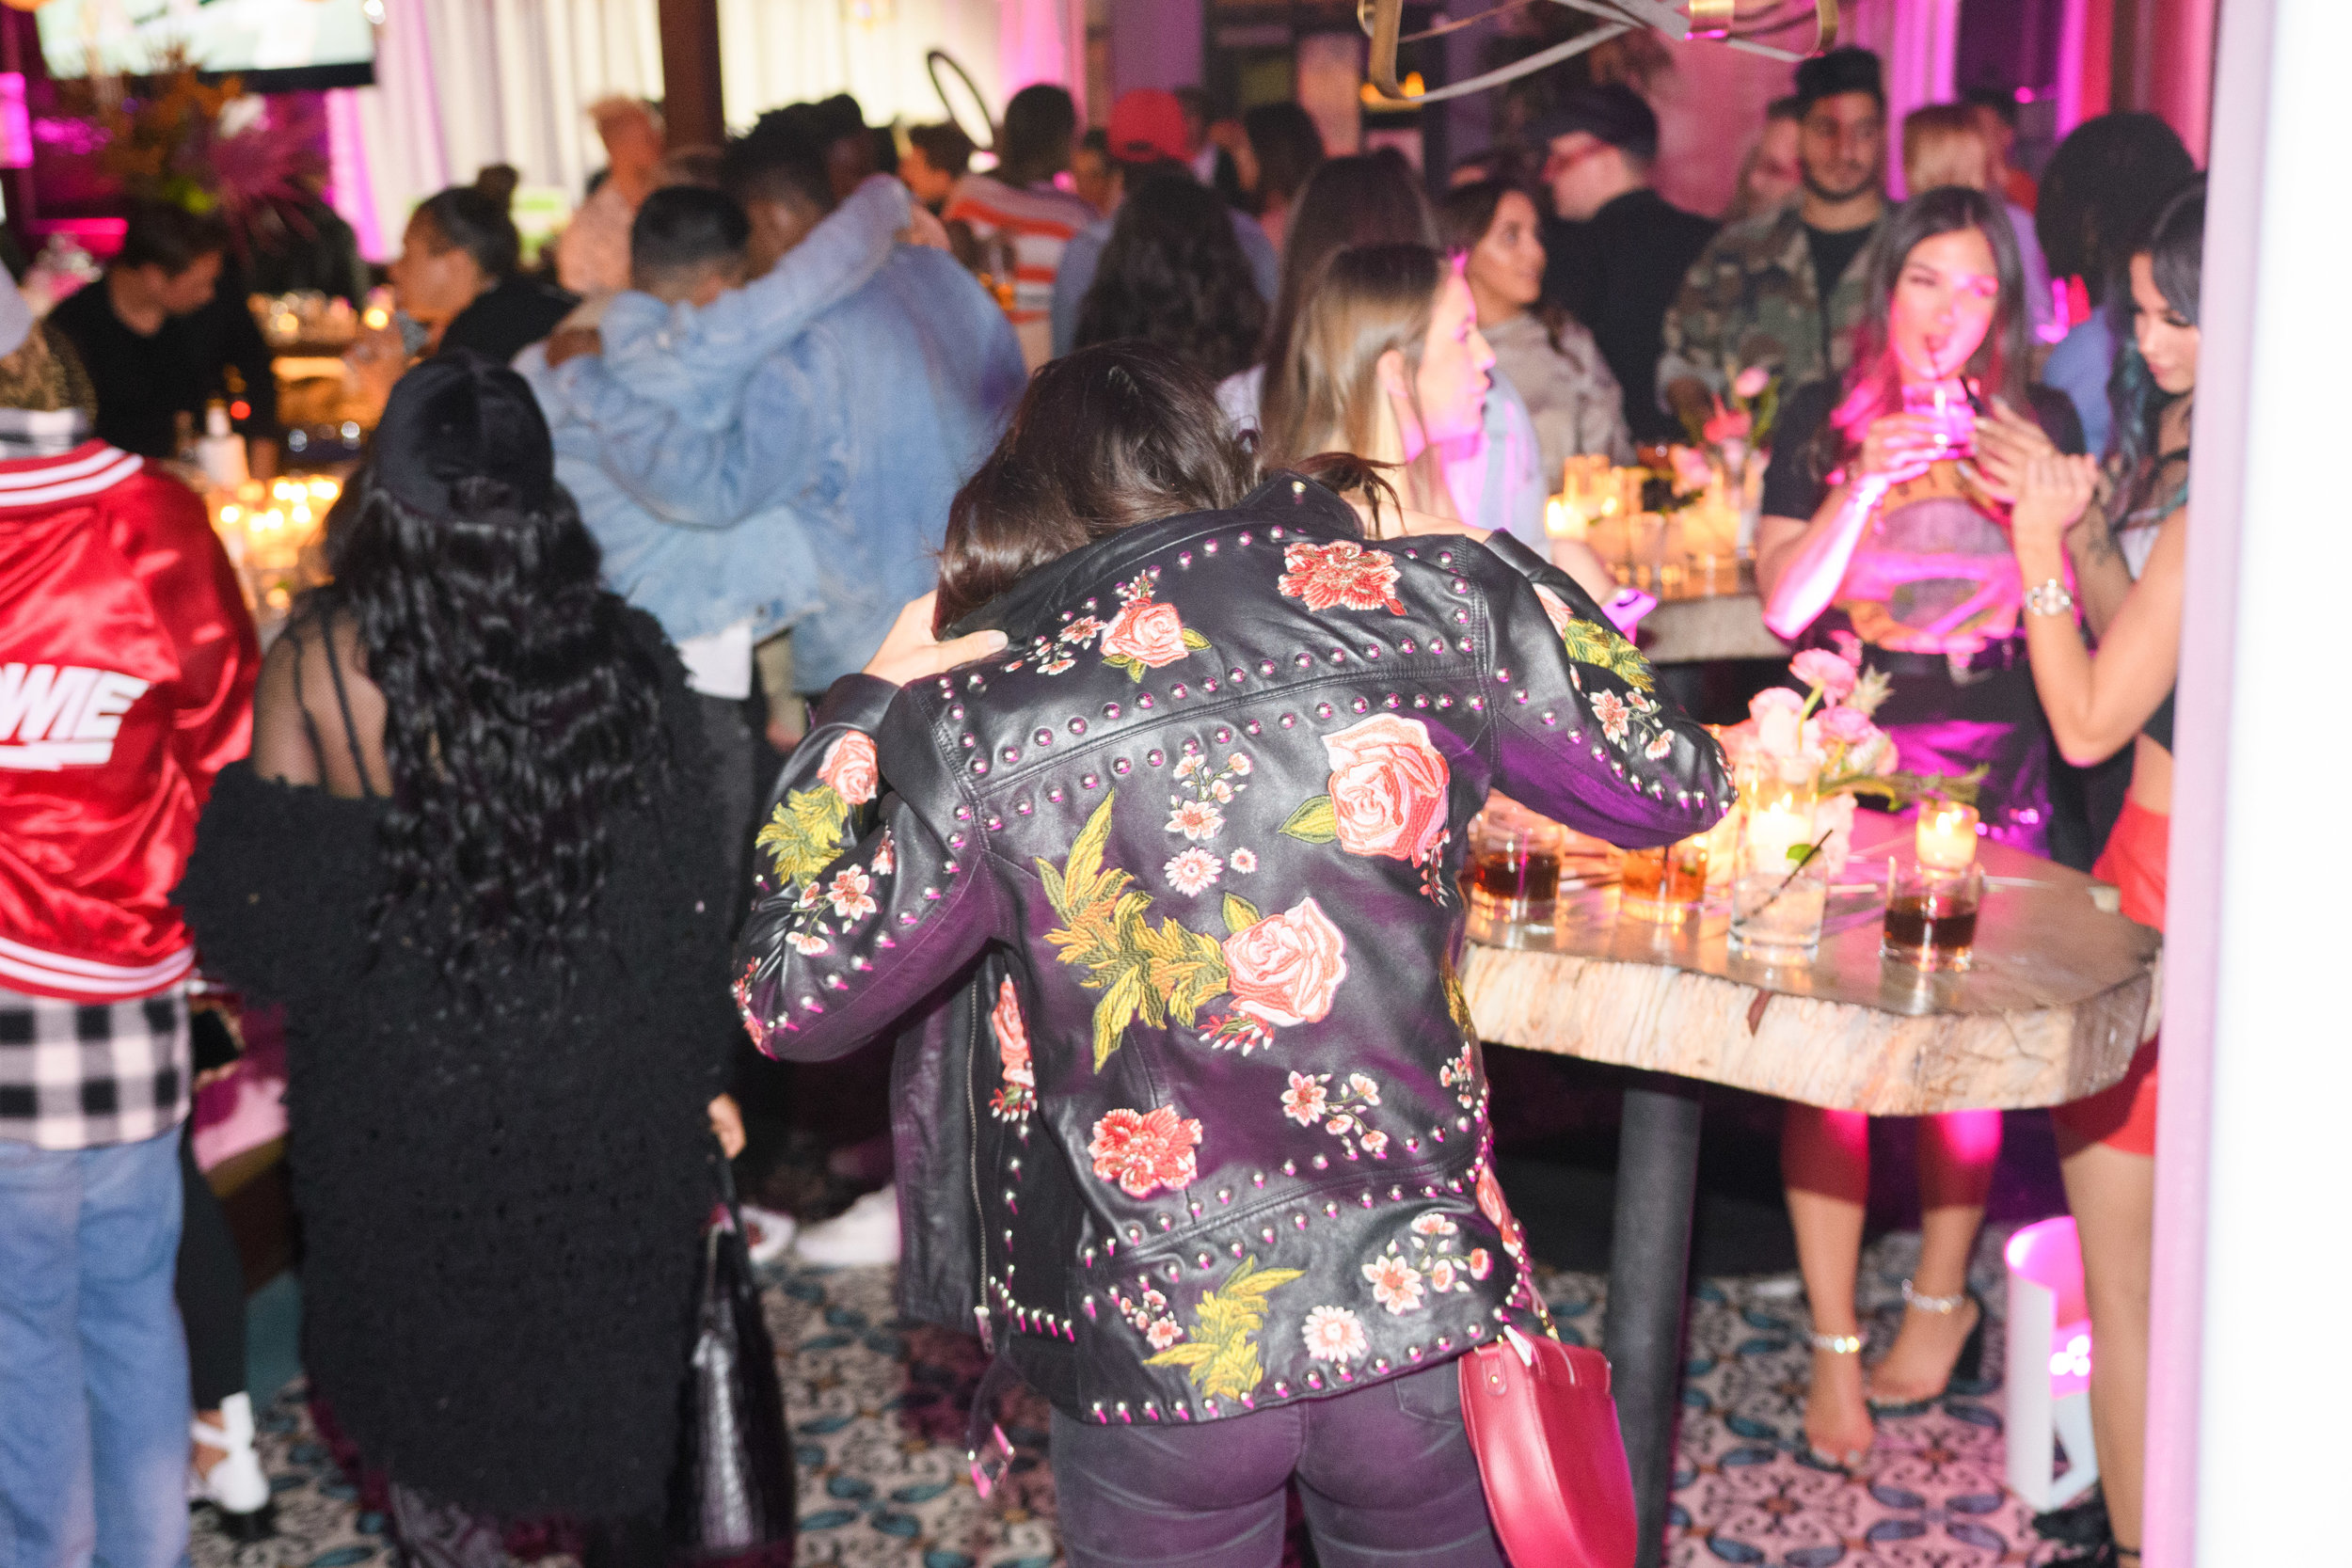 PrettyLittleThing New PLT Shape Collection with Stassie Celebrity Launch Party party guest wearing a hot leather jacket.jpg